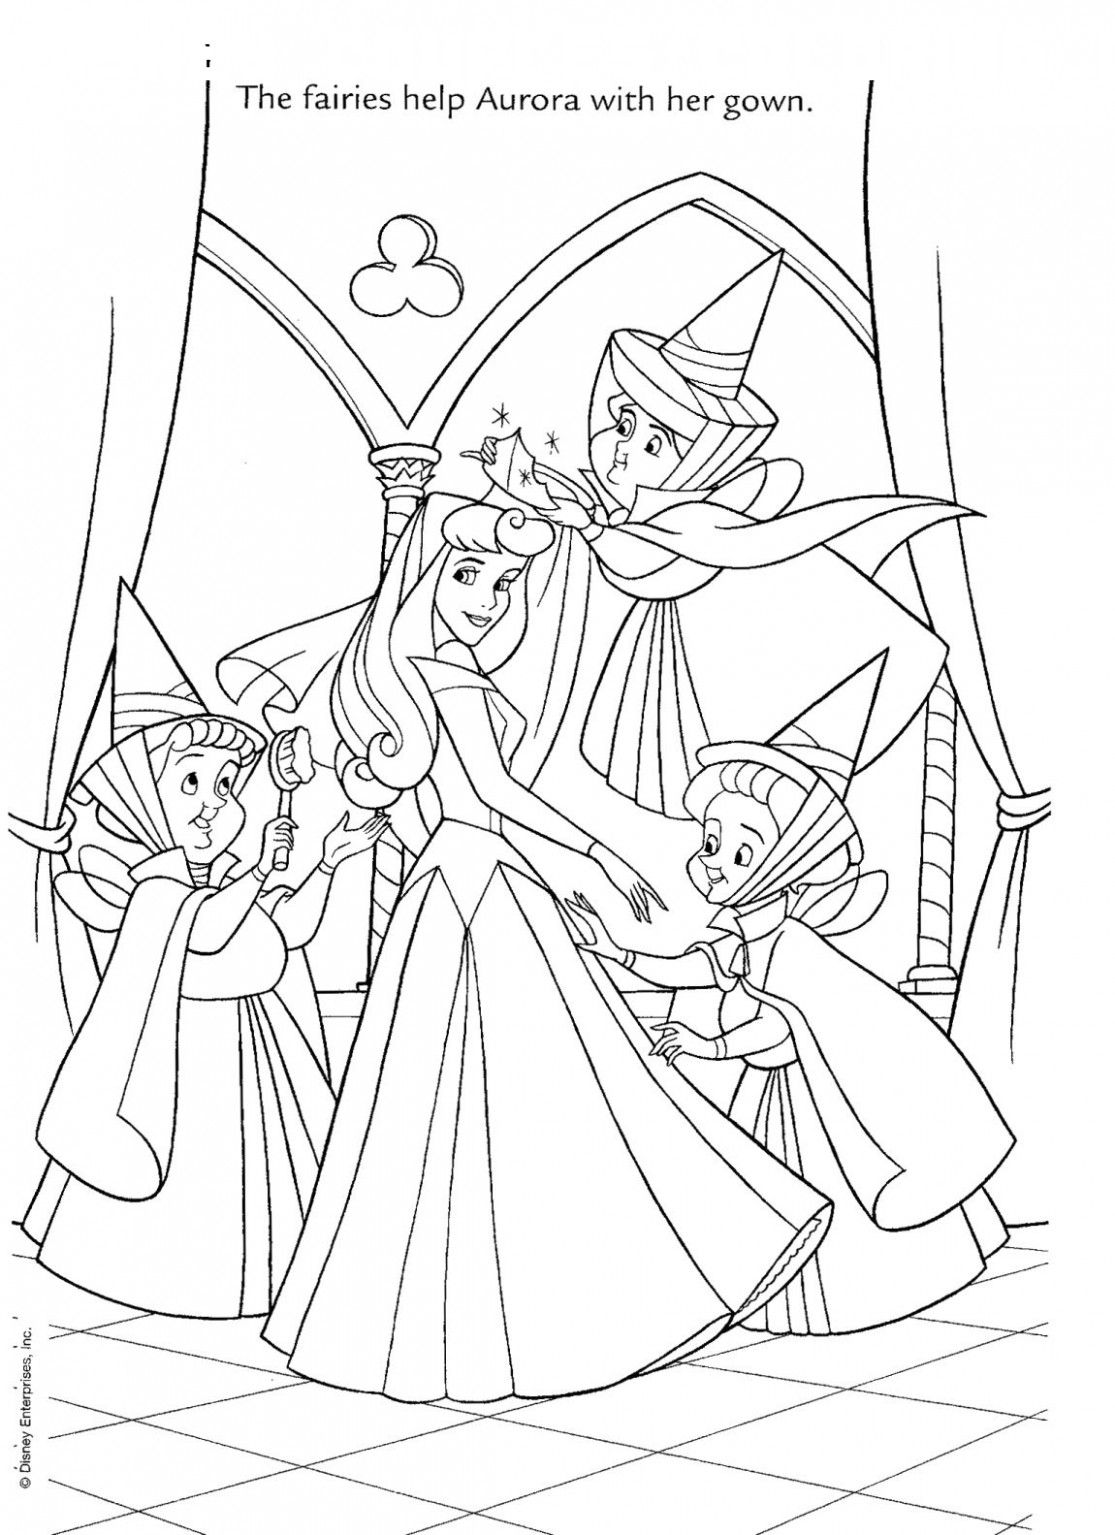 7 Disney Couples Coloring Pages In 2020 Wedding Coloring Pages Disney Princess Wedding Disney Princess Coloring Pages